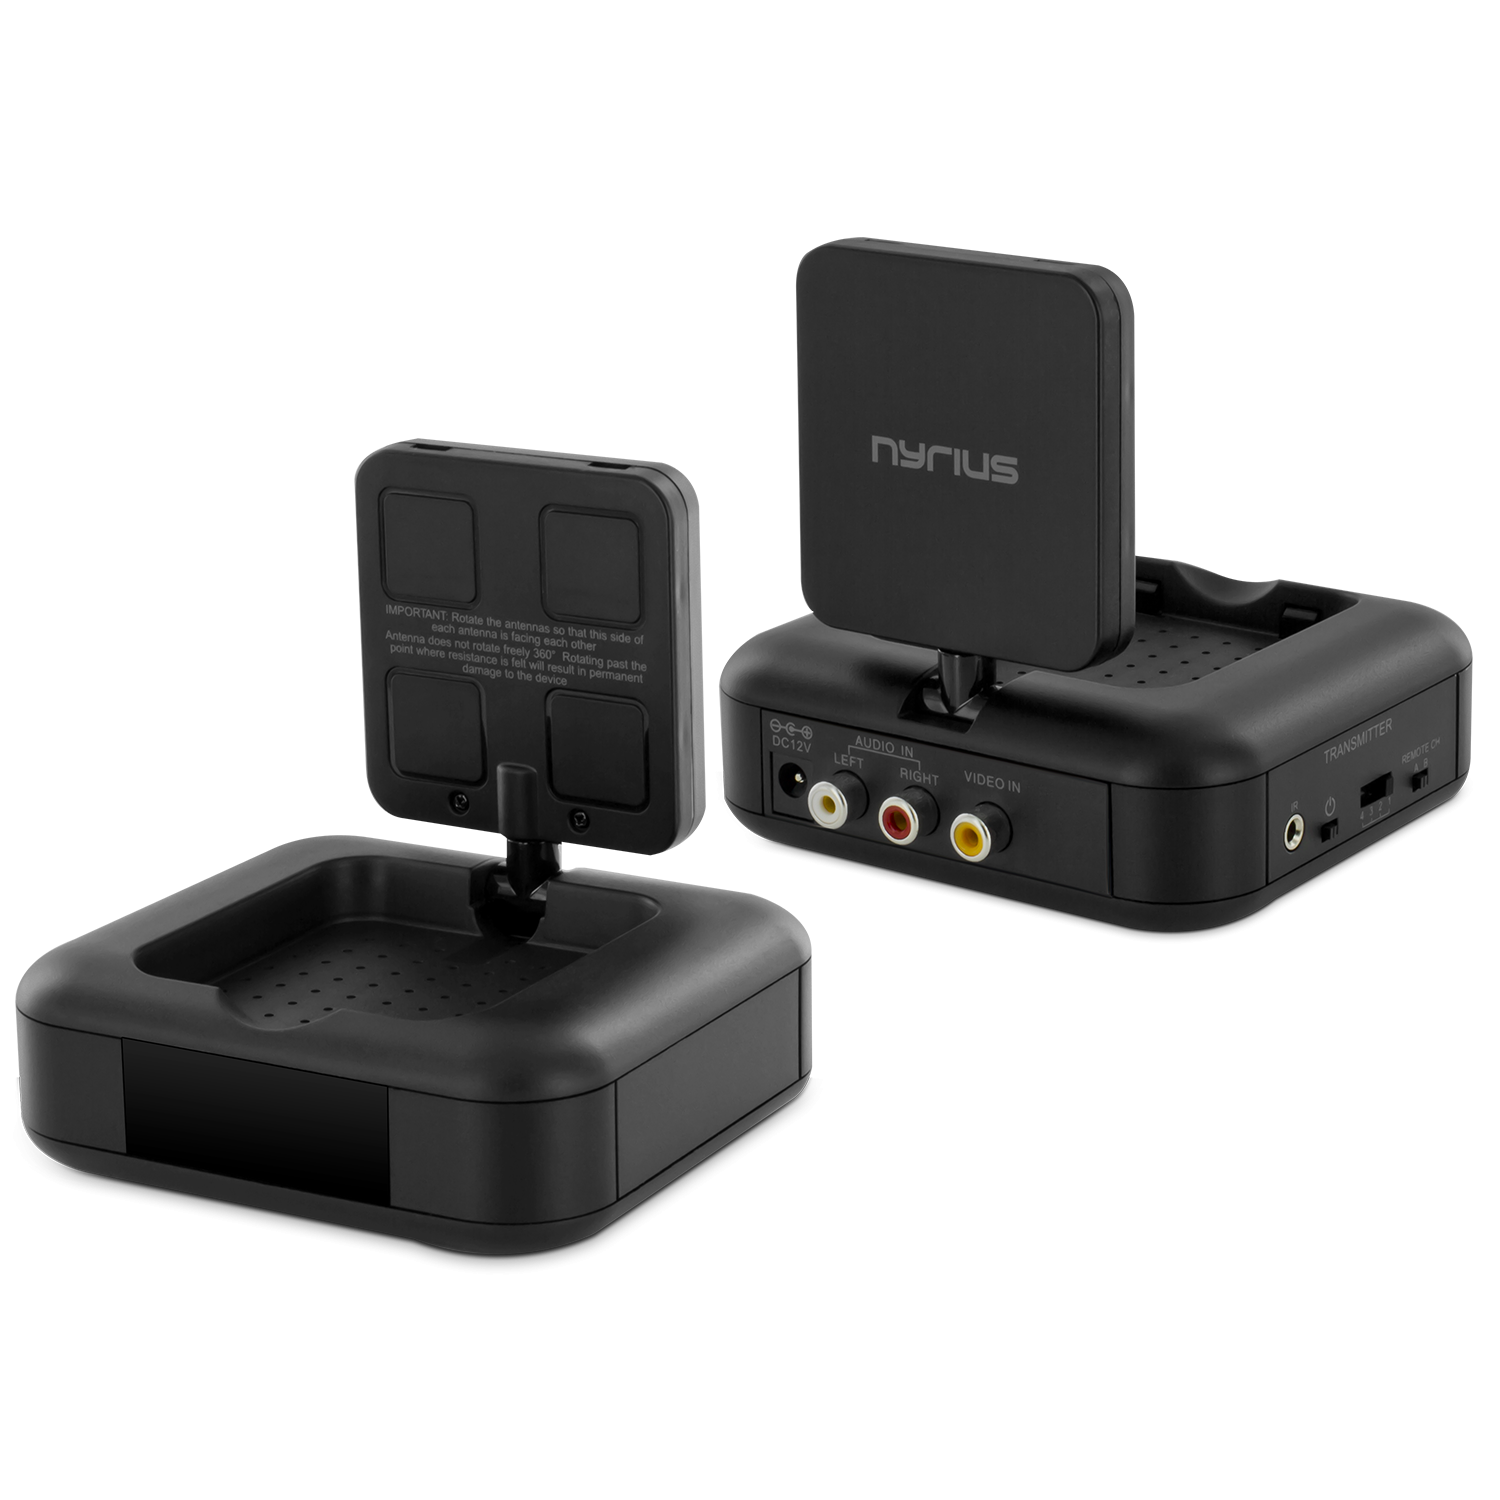 Nyrius wireless audio video transmitter and receiver system